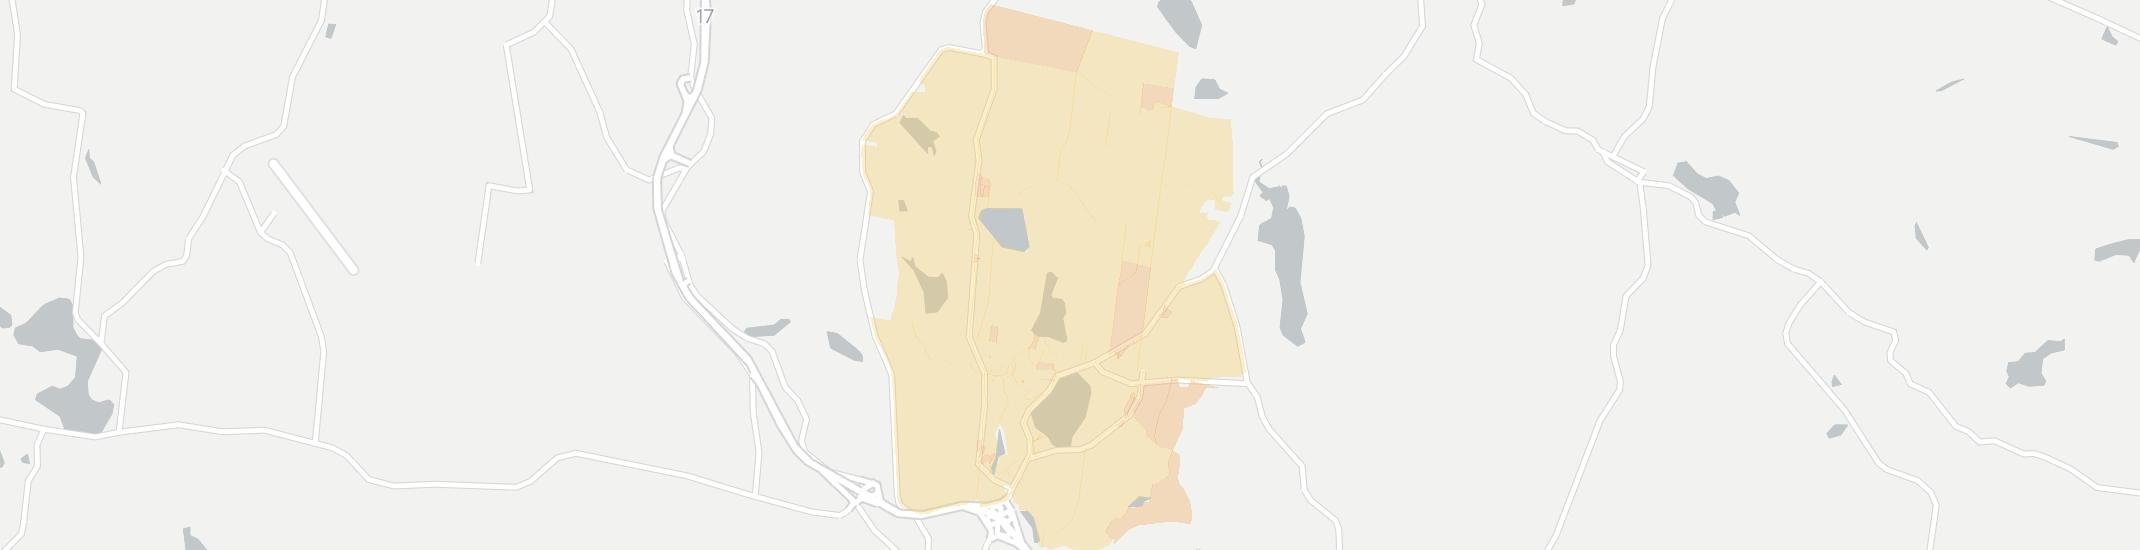 Kiamesha Lake Internet Competition Map. Click for interactive map.